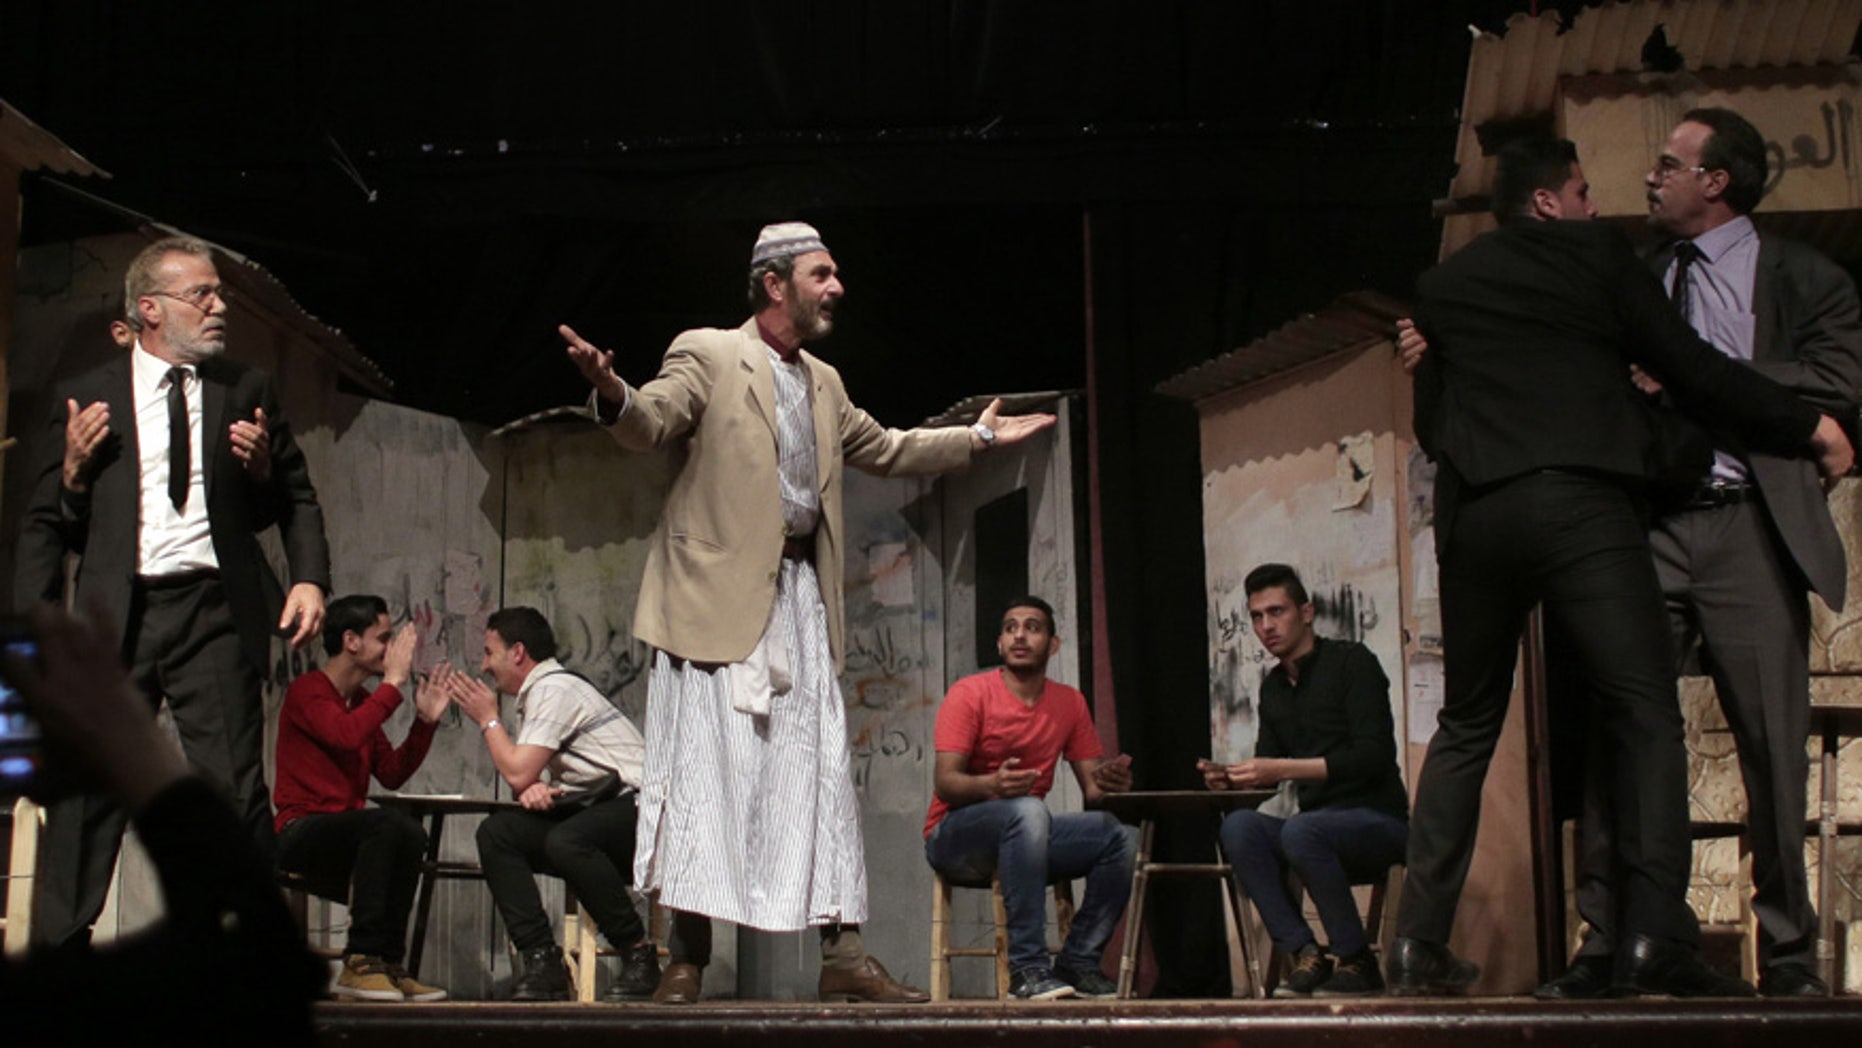 """April 28, 2016: Palestinian actors perform a Gaza version of Shakespeare's """"Romeo and Juliet"""" play on the stage of a cultural center in Gaza City."""